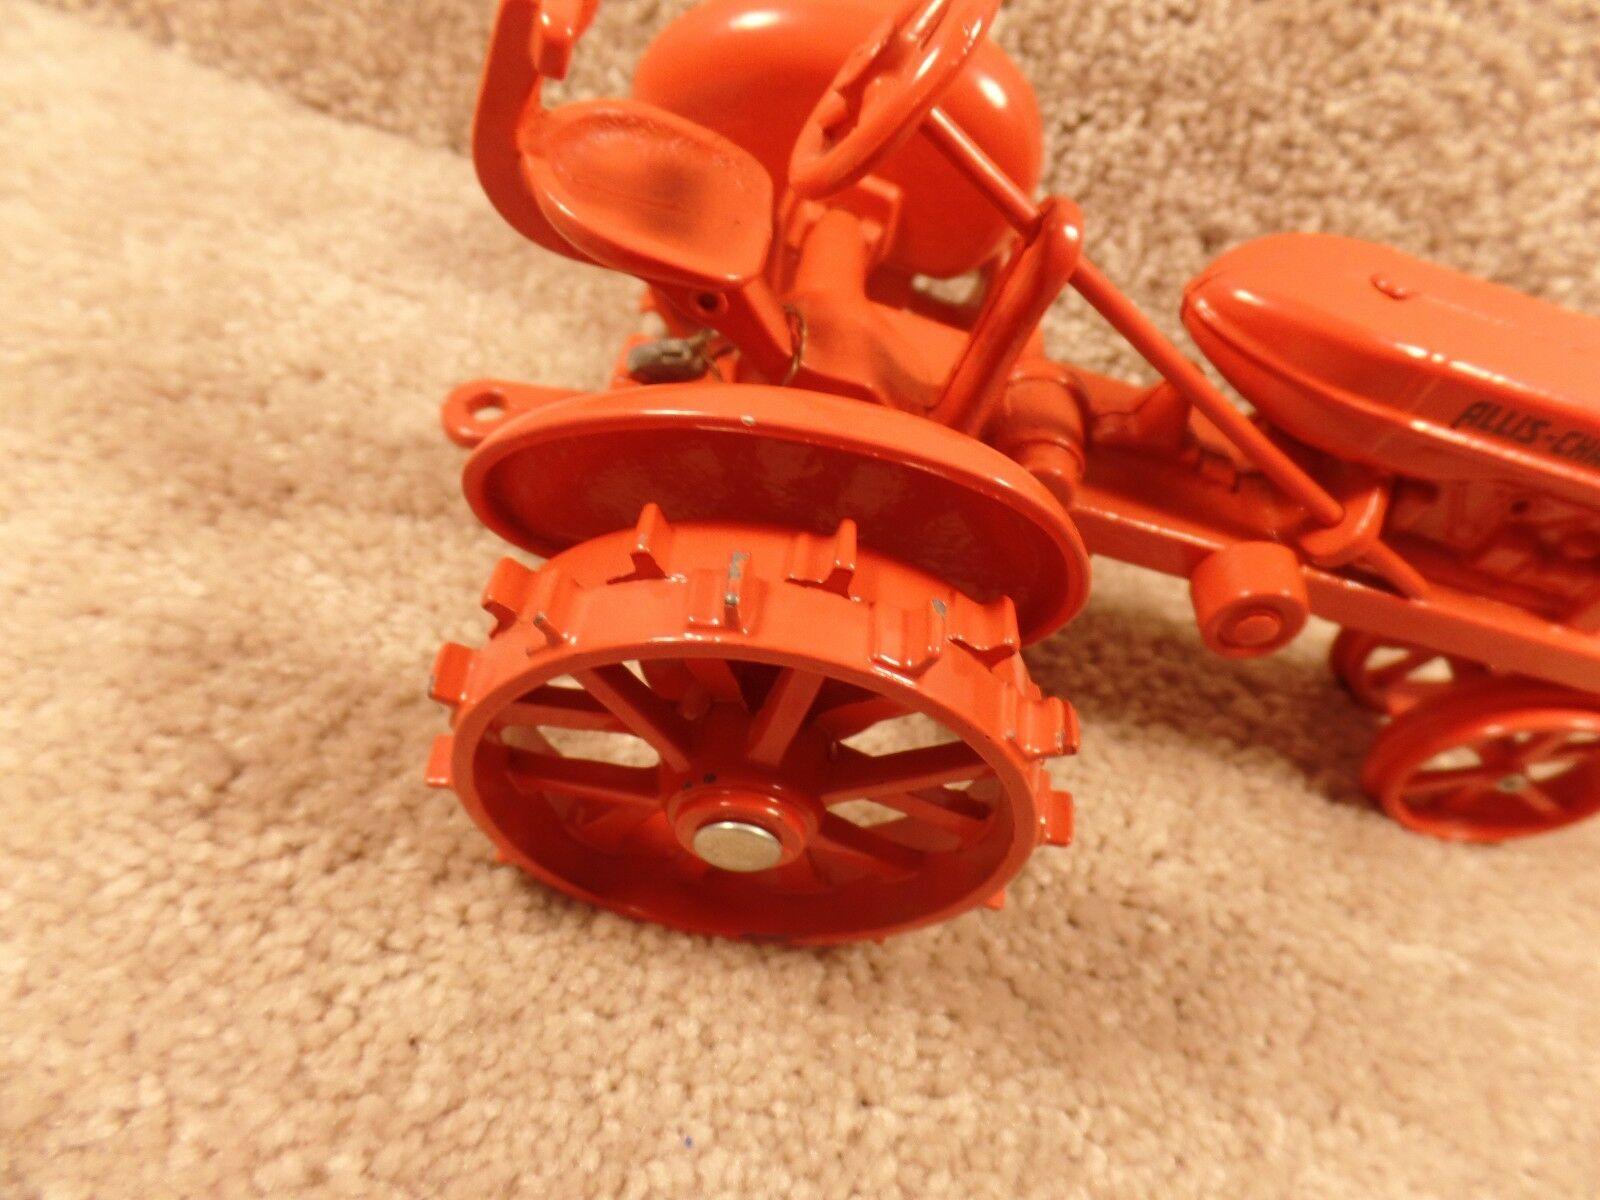 Scale Models 1 16 Diecast Allis Chalmers Chalmers Chalmers RC Farm Tractor Series Collector 0c4cd8